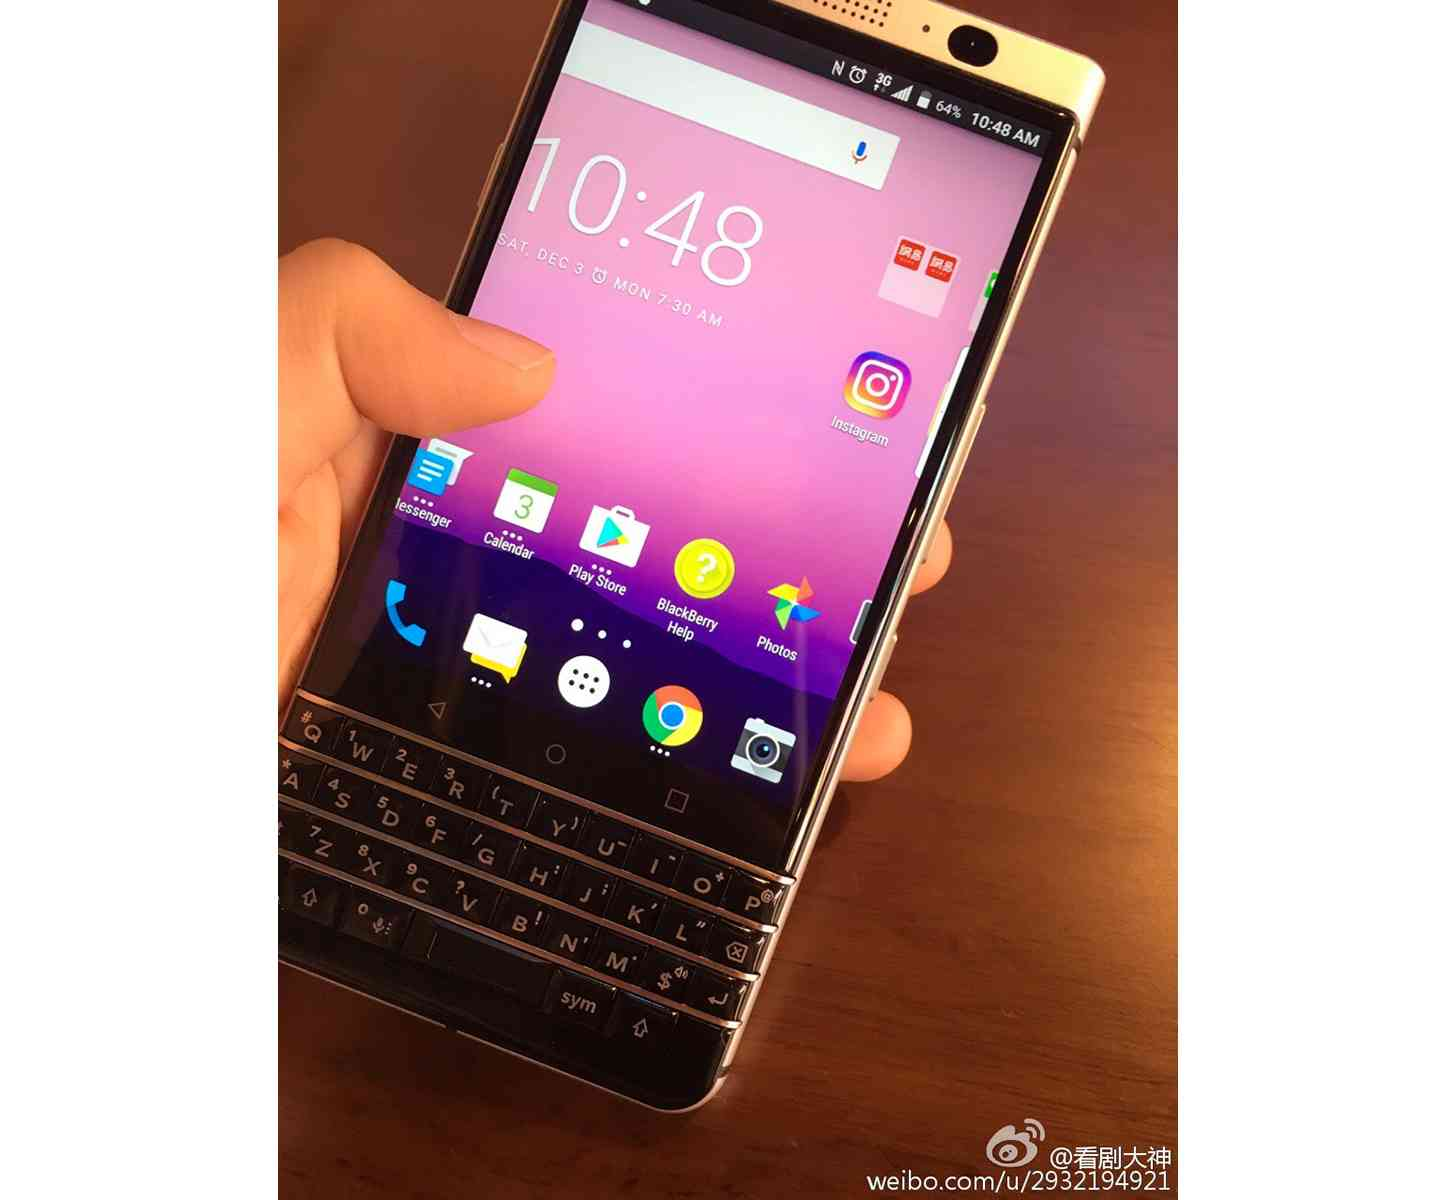 Phone Blackberry On Android Phone blackberry android phone leaked photos claim this is the qwerty keypad device due for 2017